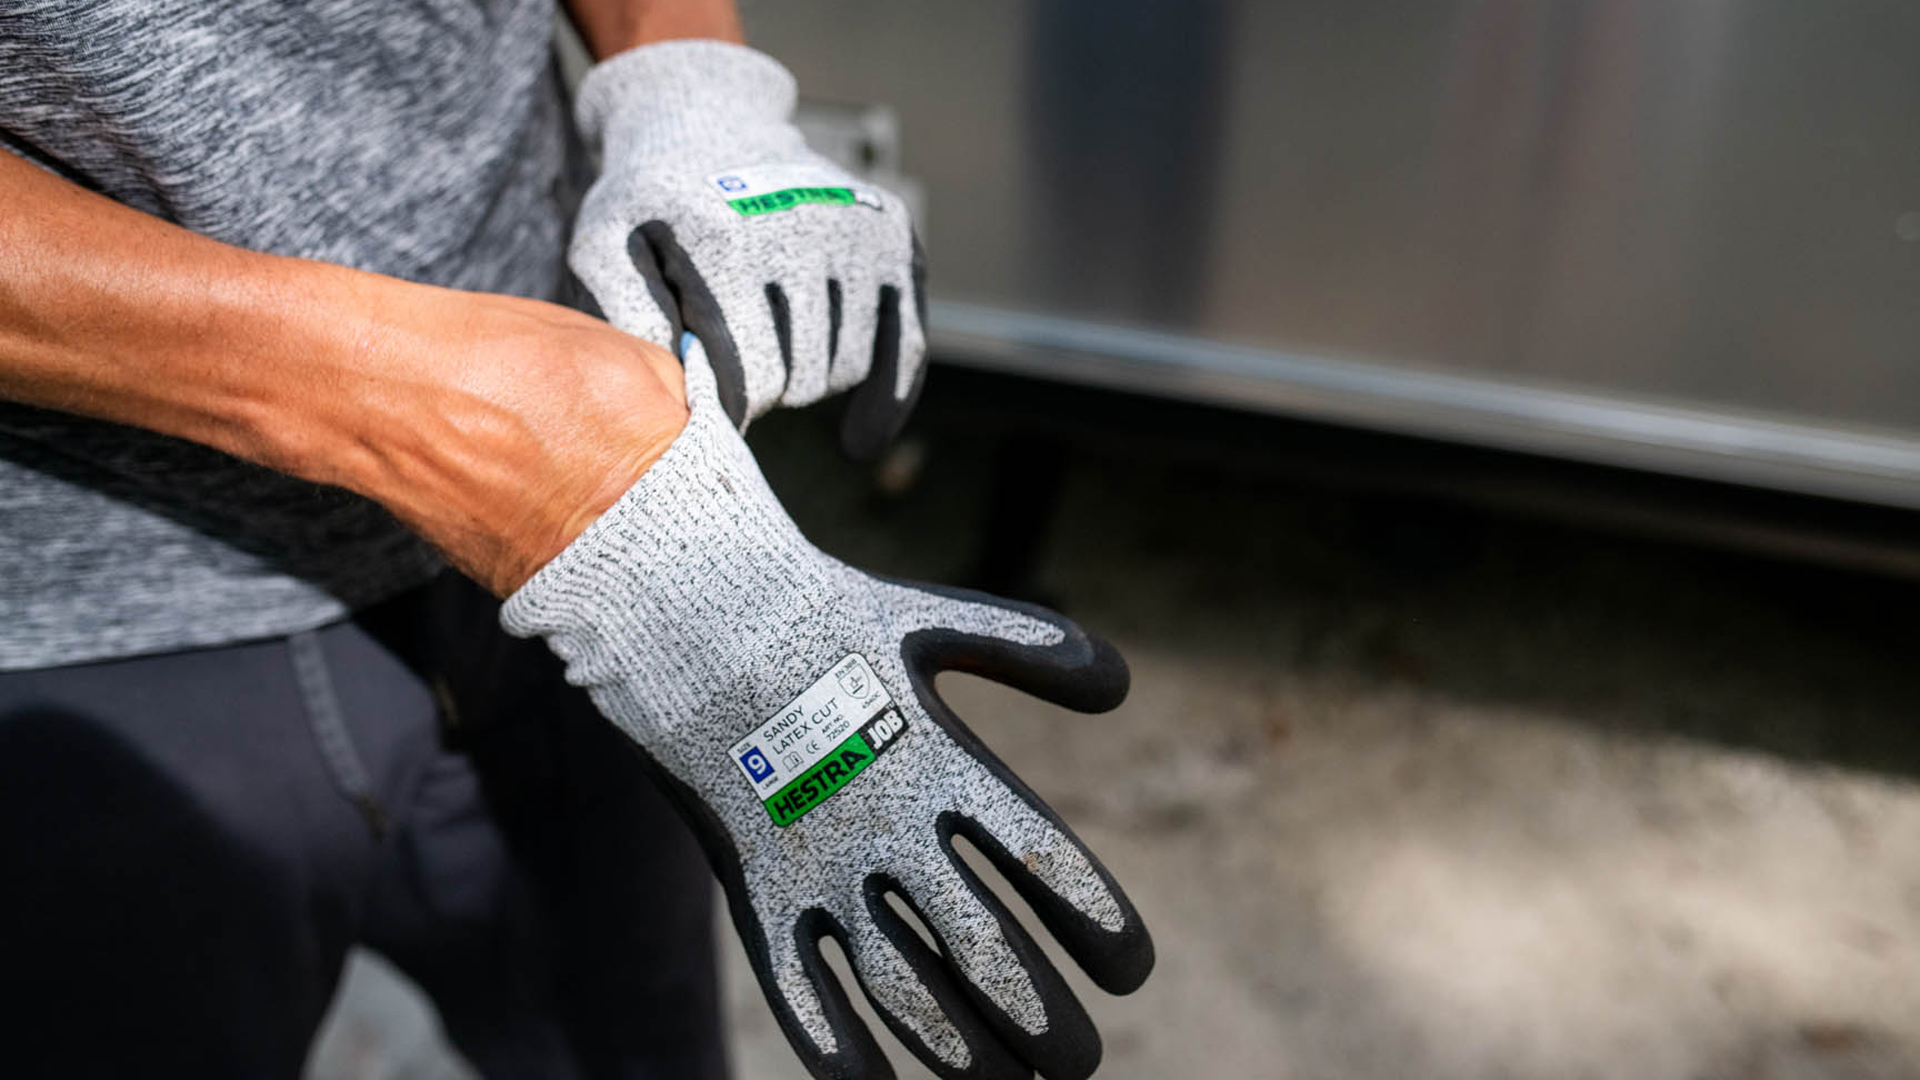 Airstream putting on gloves